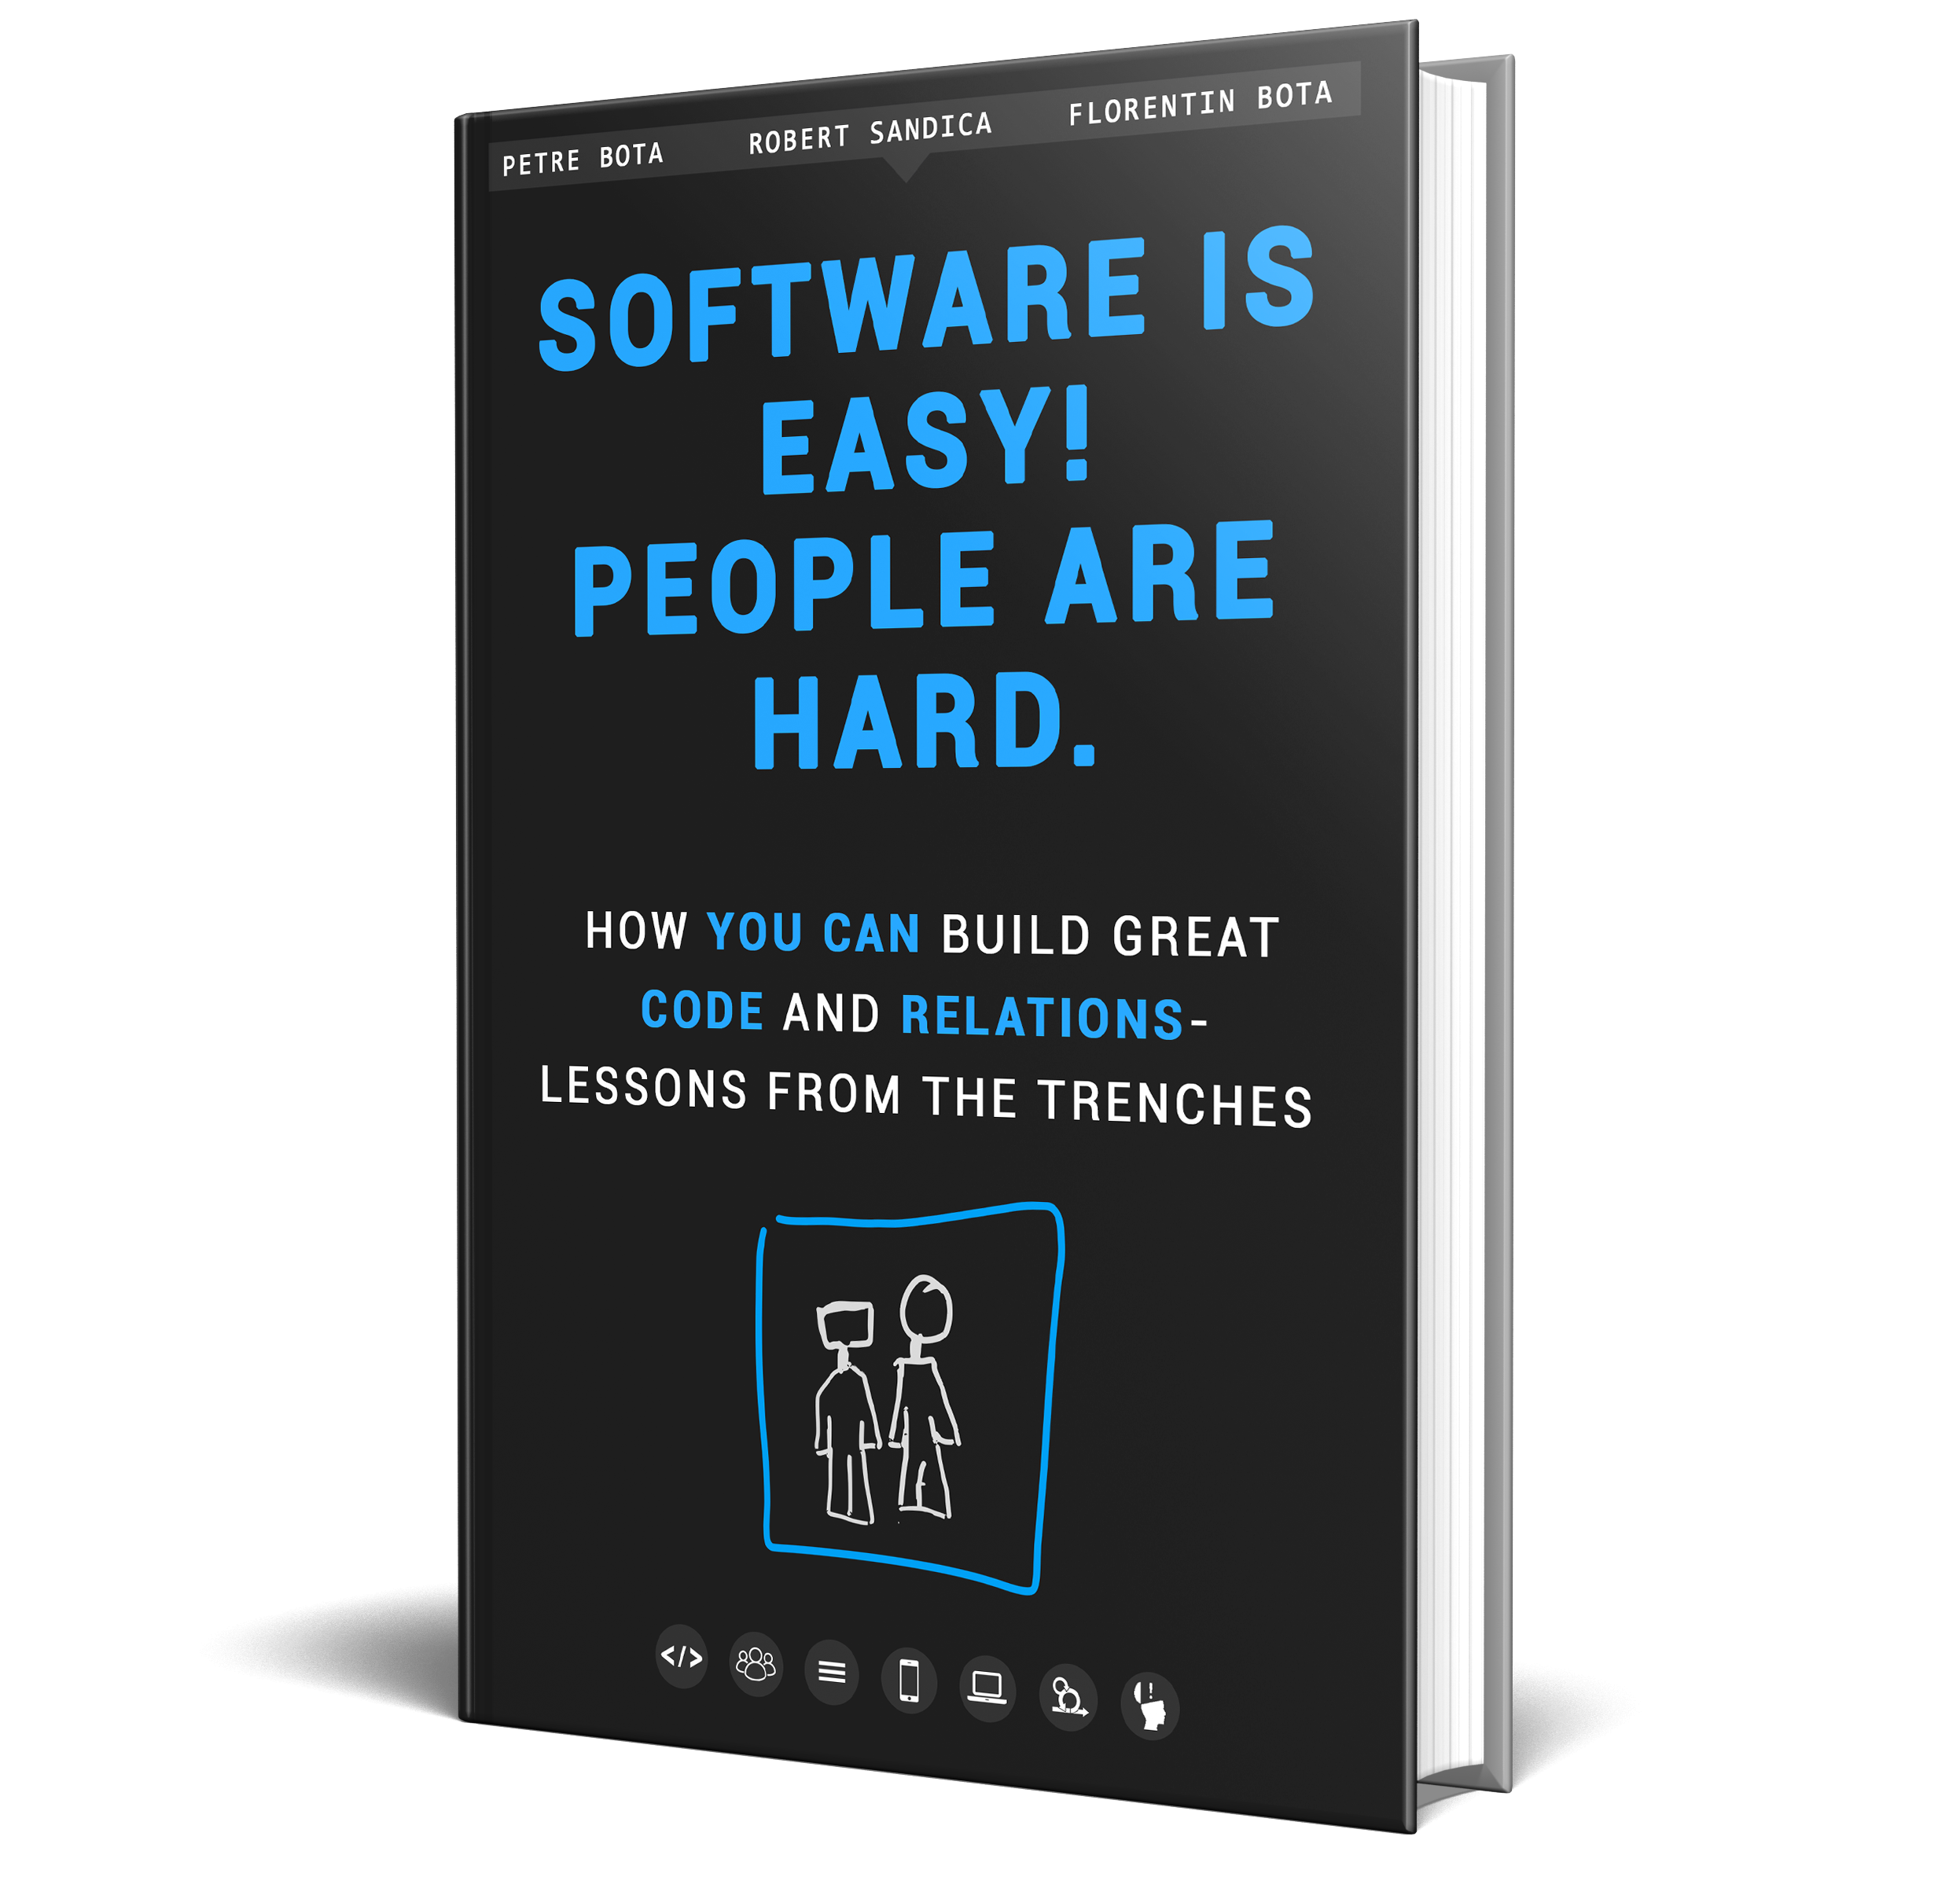 Software_is_easy_people_are_hard_book_image_buy